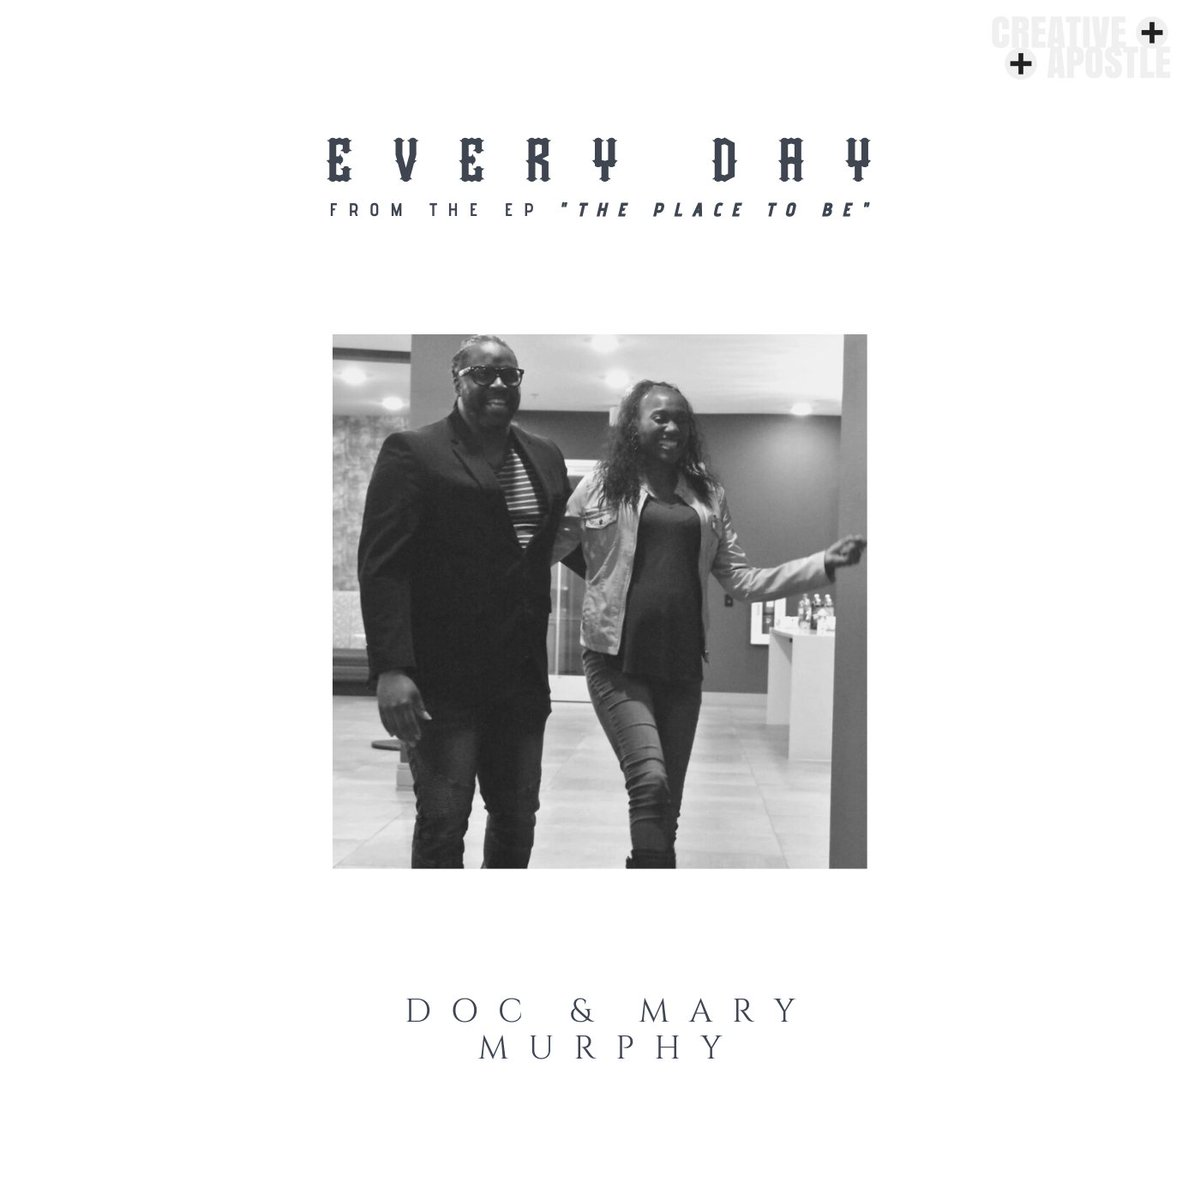 """Pastor Doc and Mary's new single """"Every Day"""" releases this week! #Christianmusic #praiseandworship #praiseHimeverydaypic.twitter.com/Ydosef3xrD"""